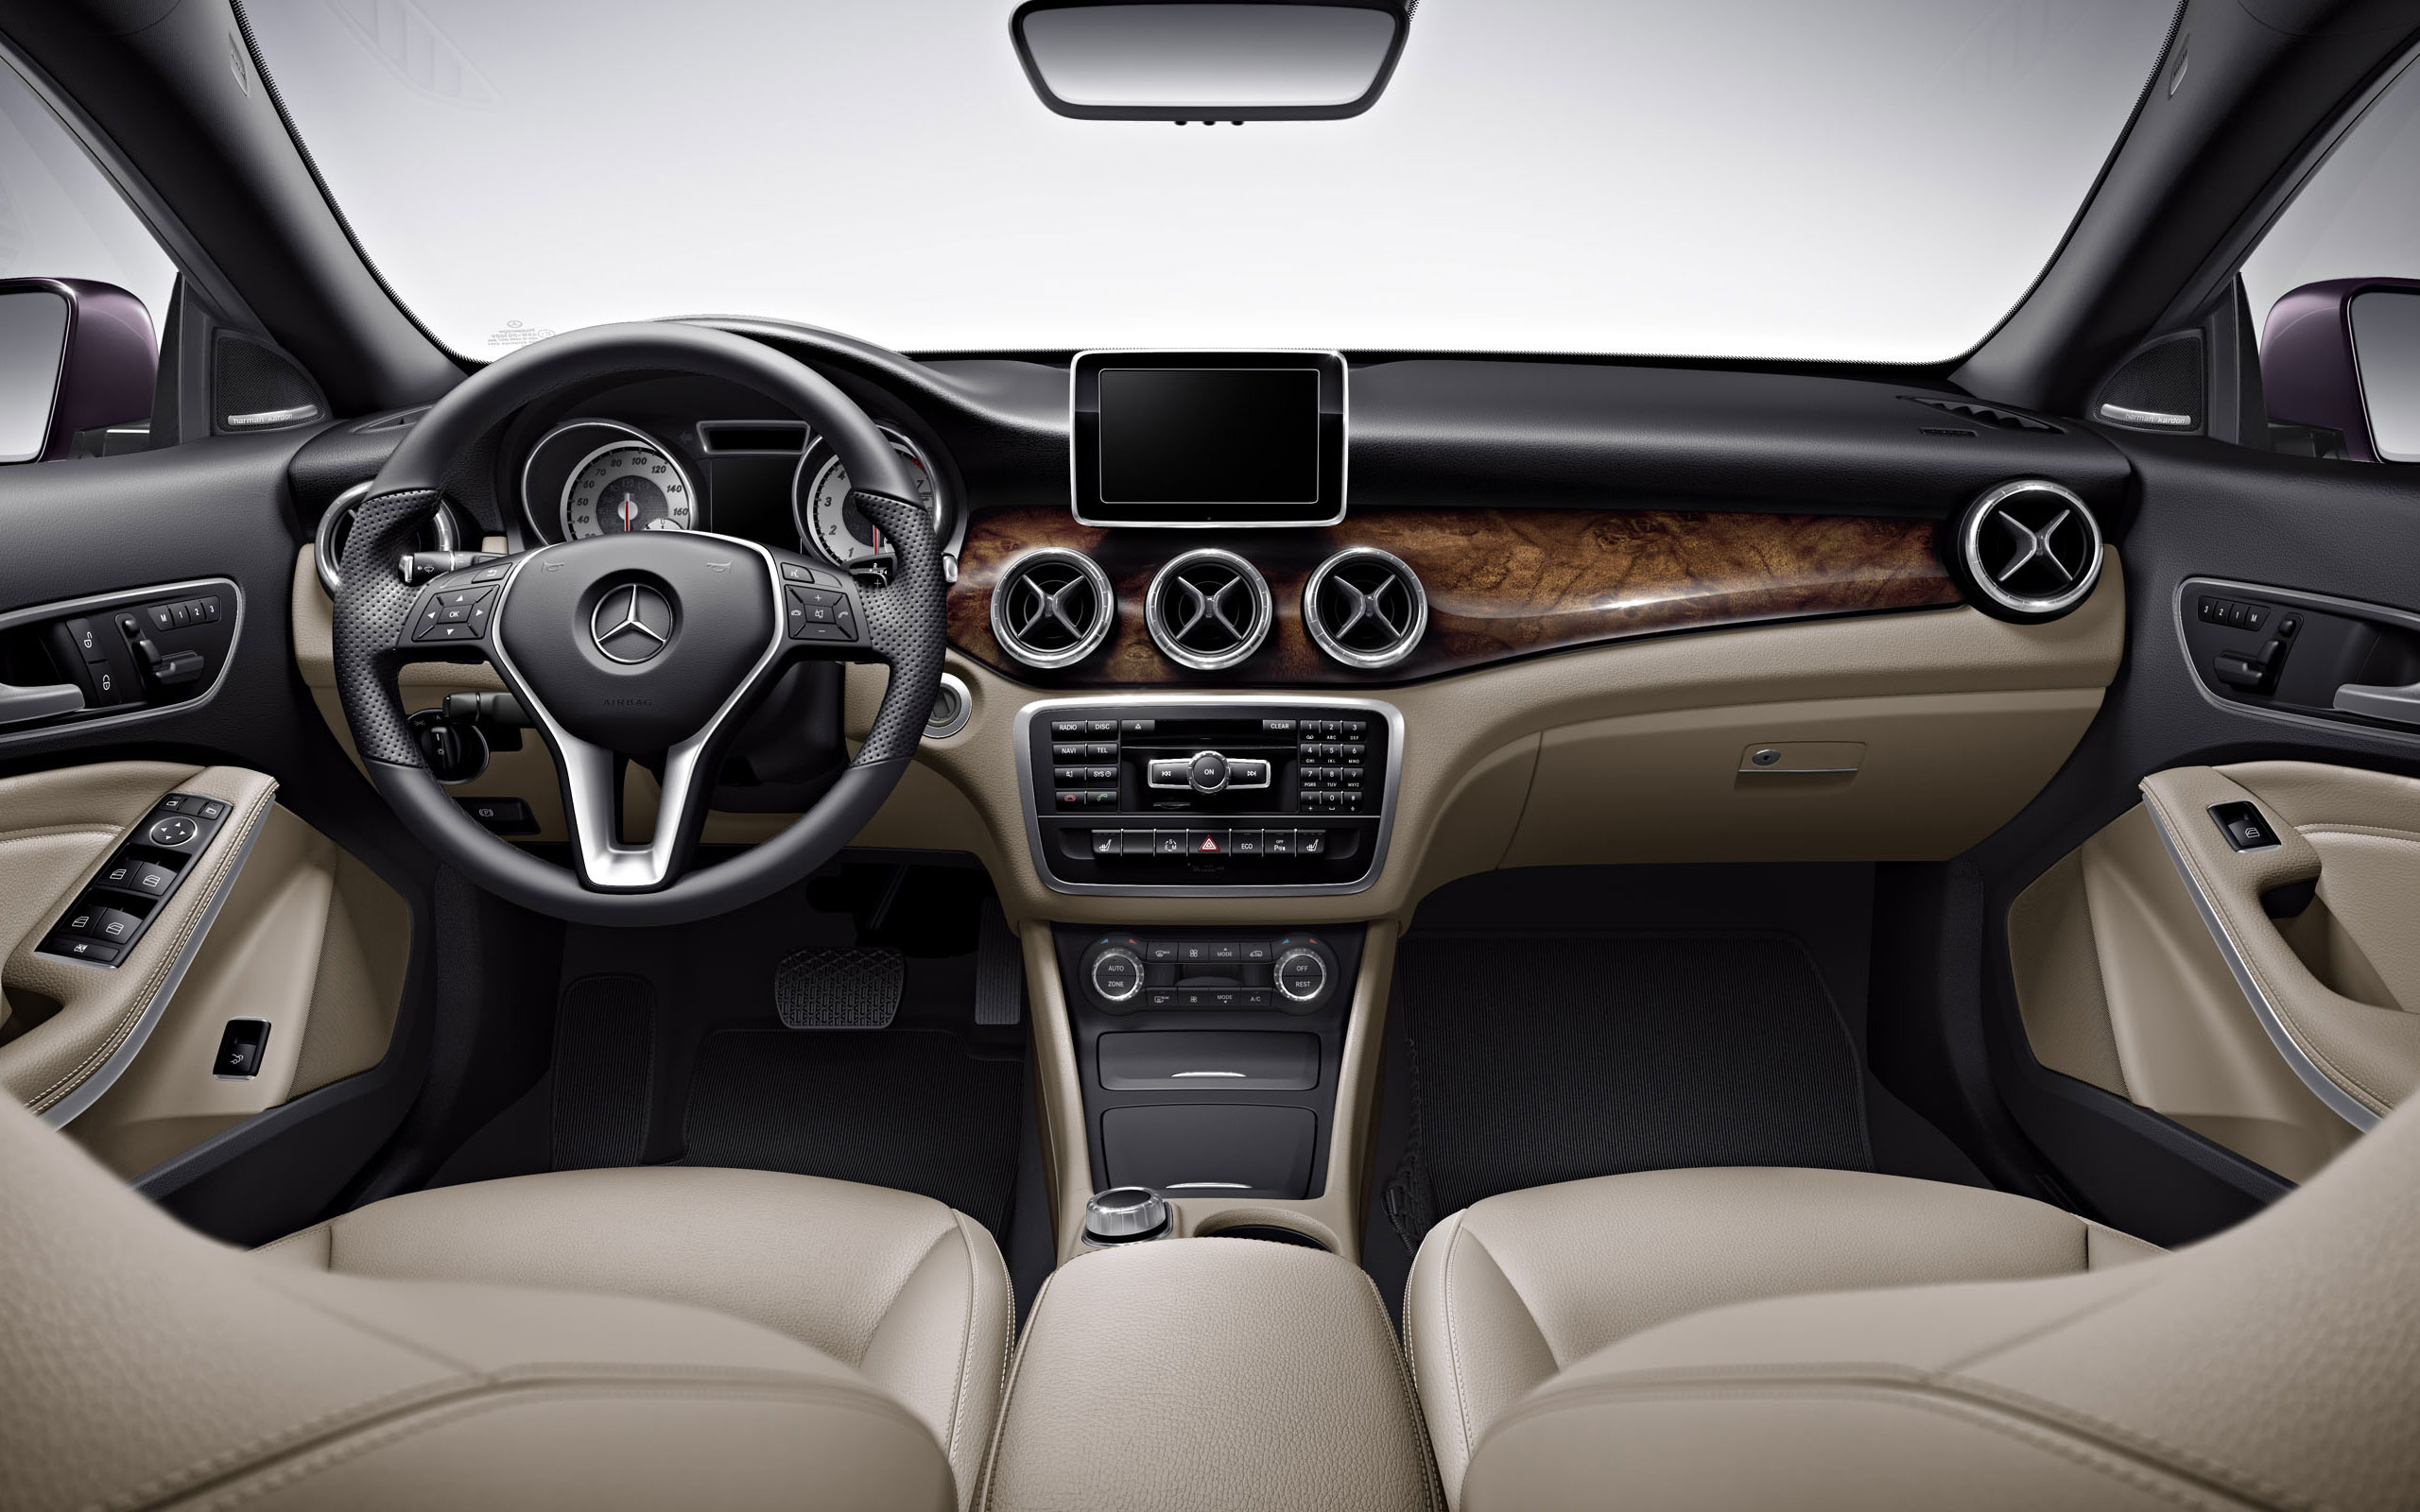 2014 Mercedes CLA250 interior in Beige with hand-polished Burl Walnut wood trim